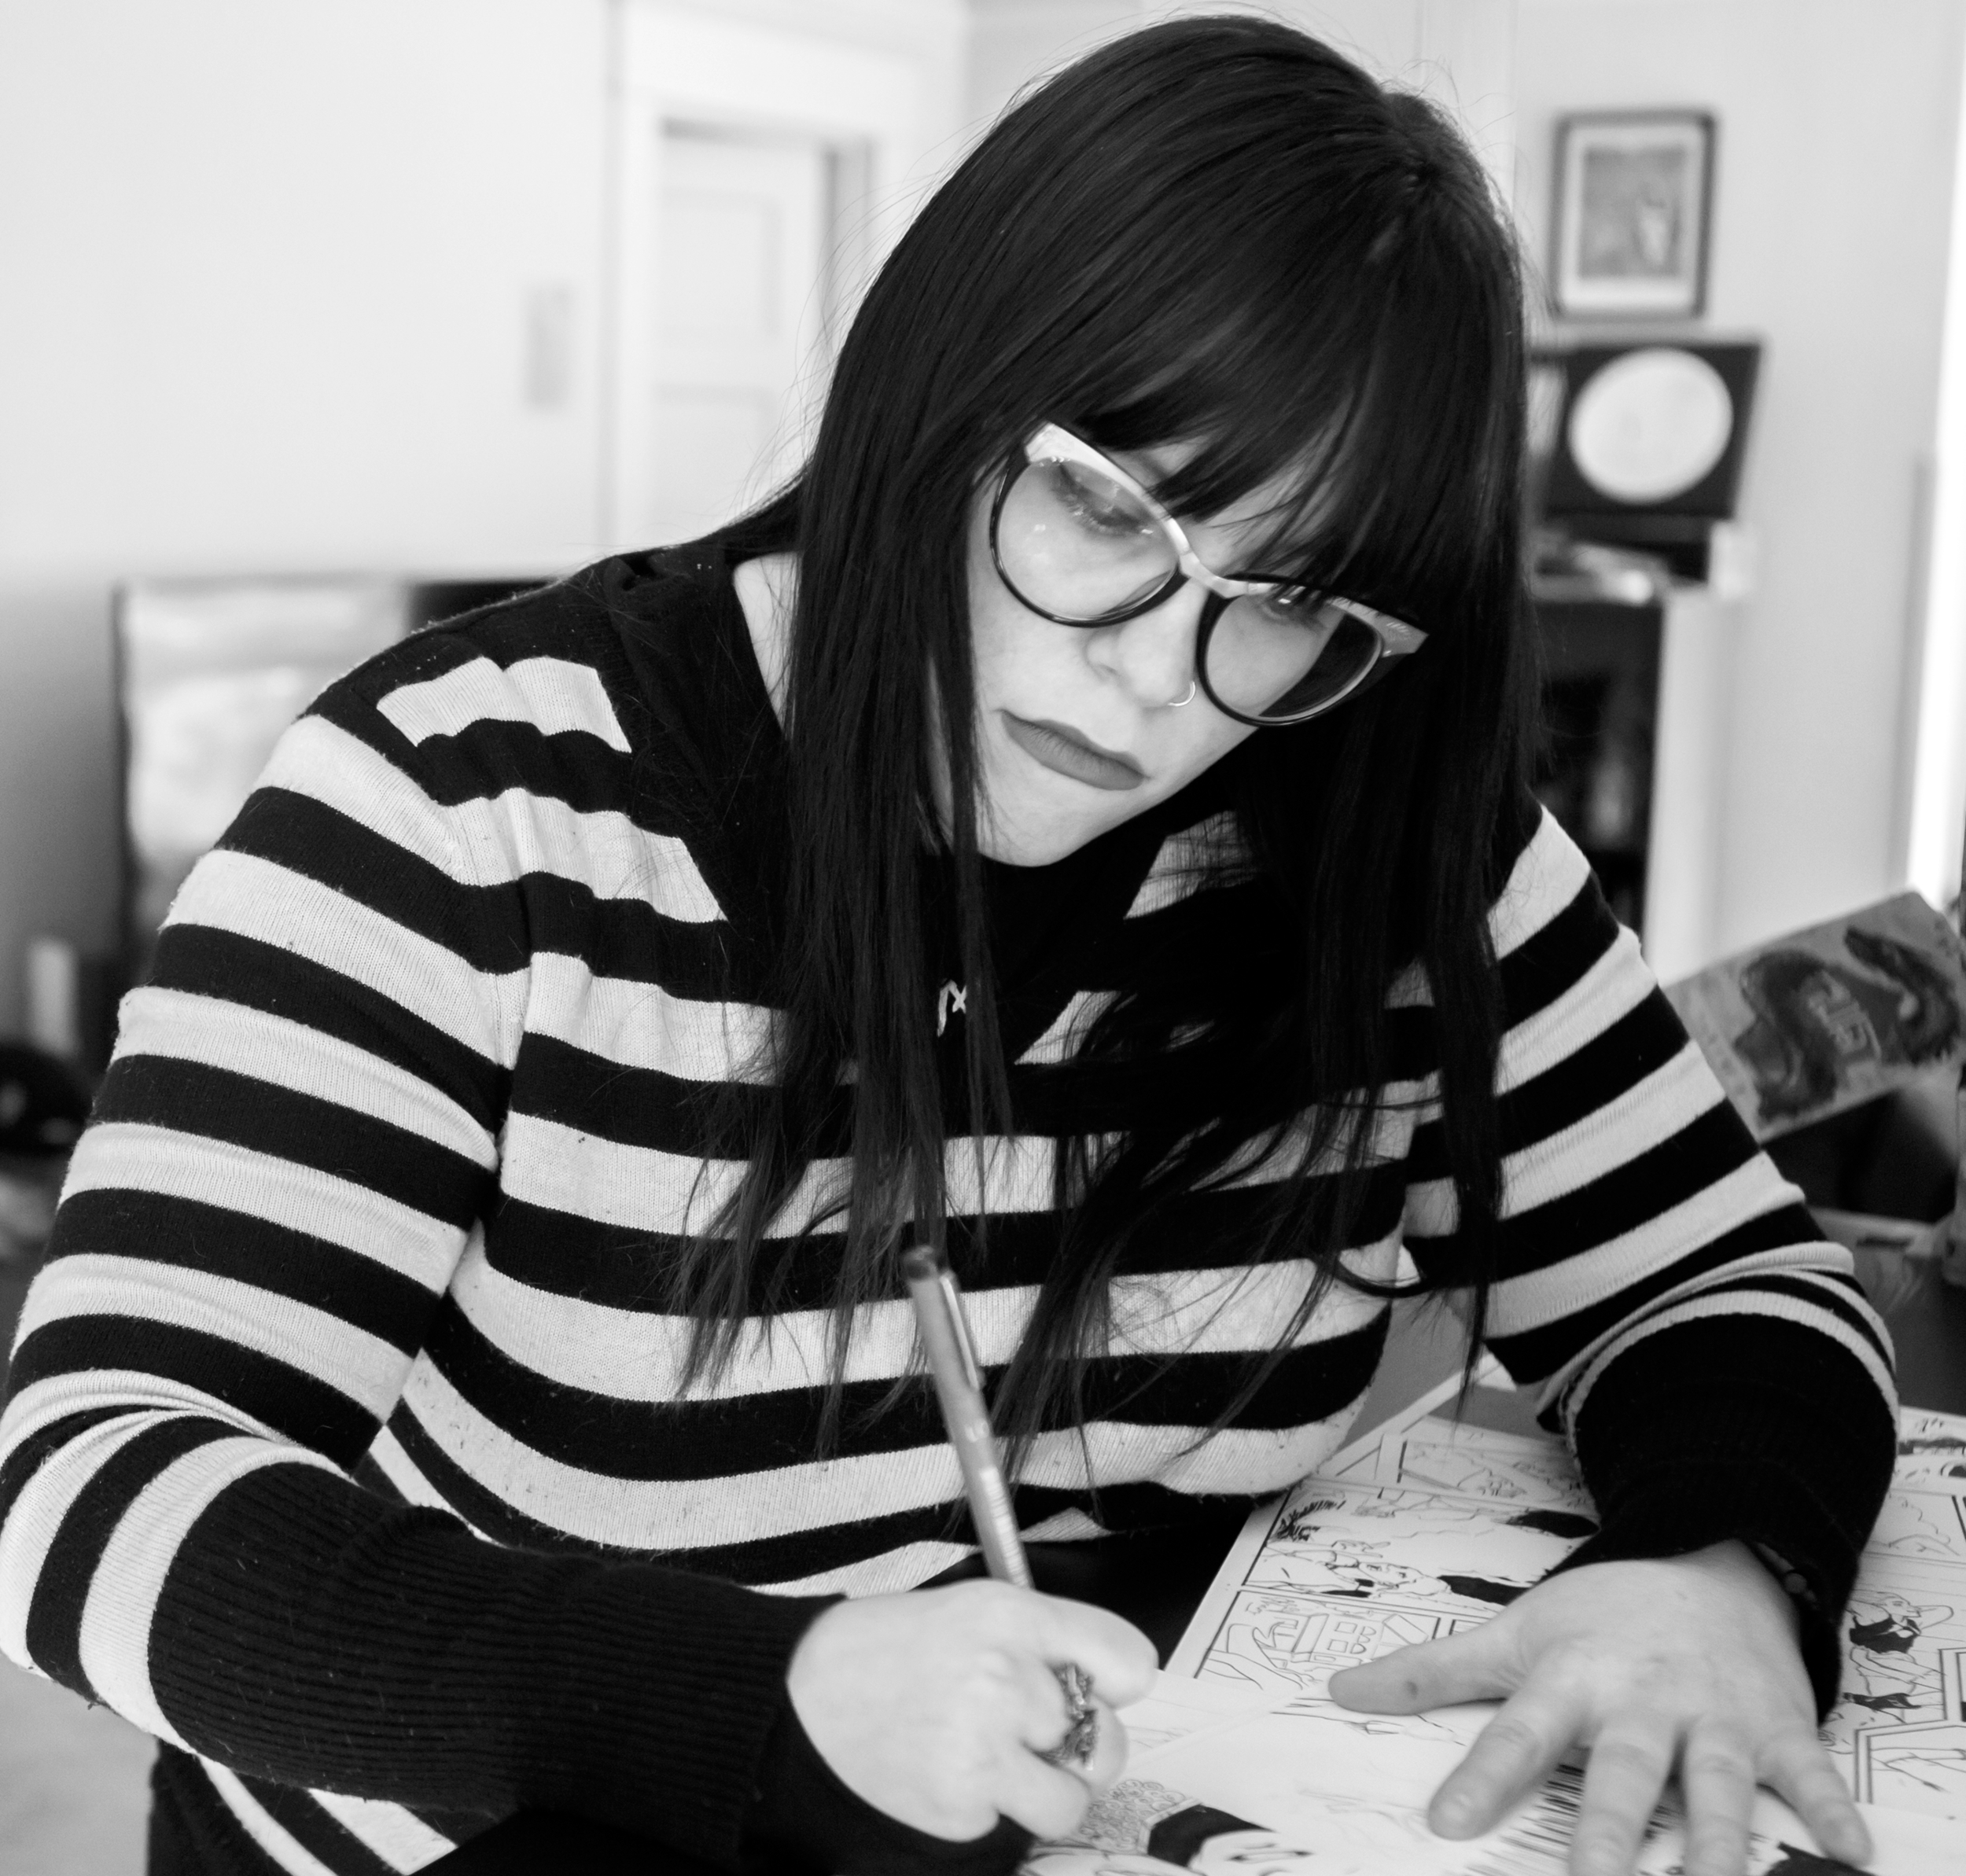 Jen - Ranger - Jen is a freelance cartoonist and game designer at Haunted Vault Studios. Her recent gaming credits include Episode, Nicki Minaj: The Empire, Plants vs Zombies. From drawing Betty & Veronica's Vixens to creator-owned Teenage Wasteland, Jen's comics can be found at any comic book store or online at comiXology. Follow her on Instagram/Twitter @TheJenya.